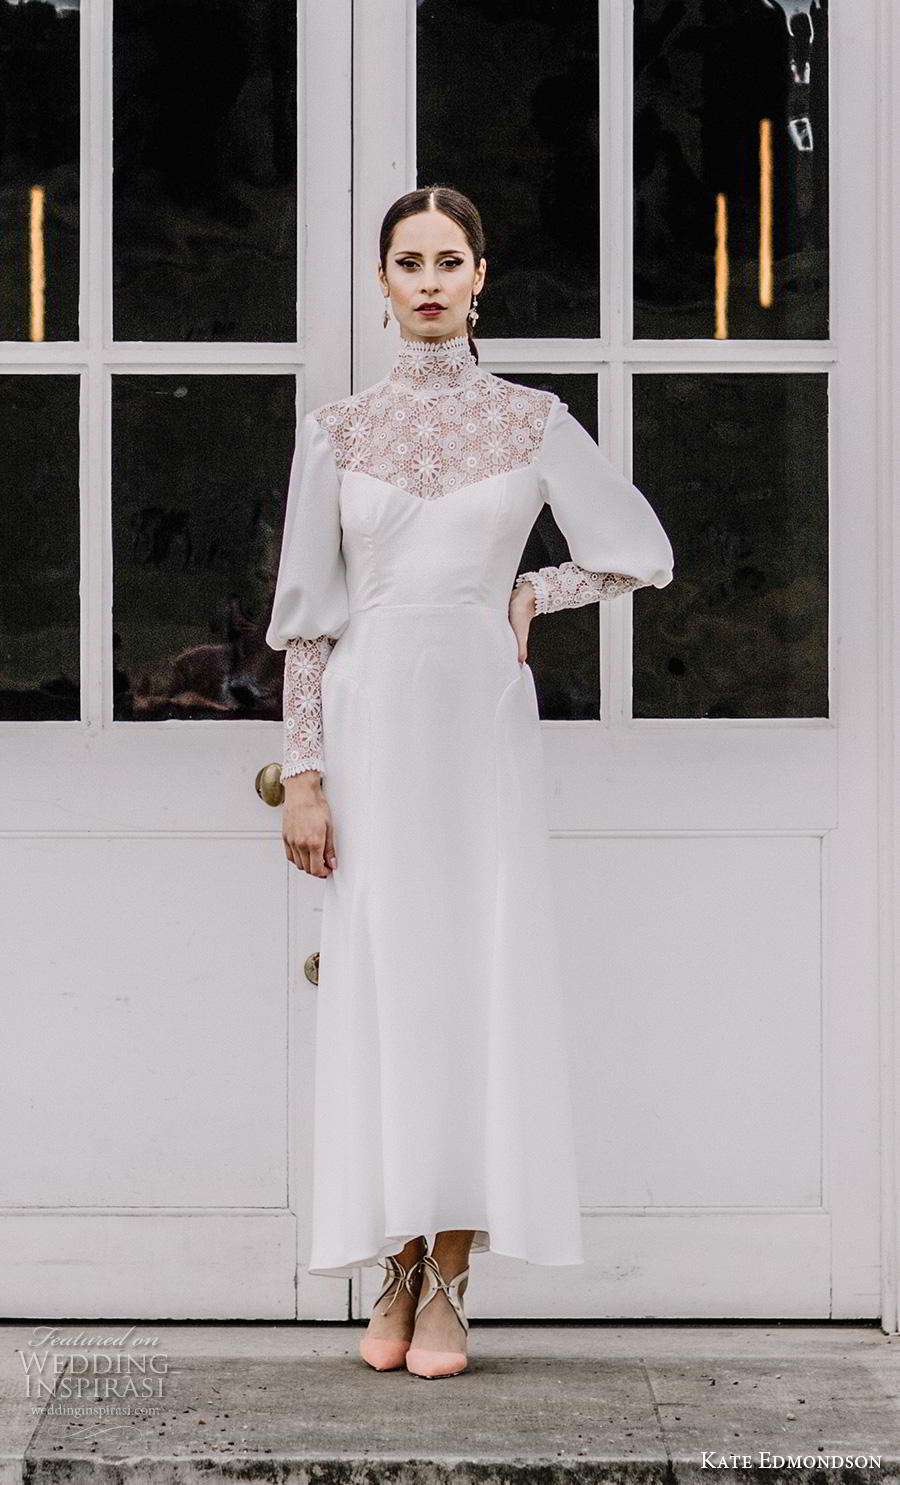 kate edmondson couture bridal long mutton leg sleeves high neck heavily embellished bodice simple casual ankle length modified a line wedding dress (3) mv